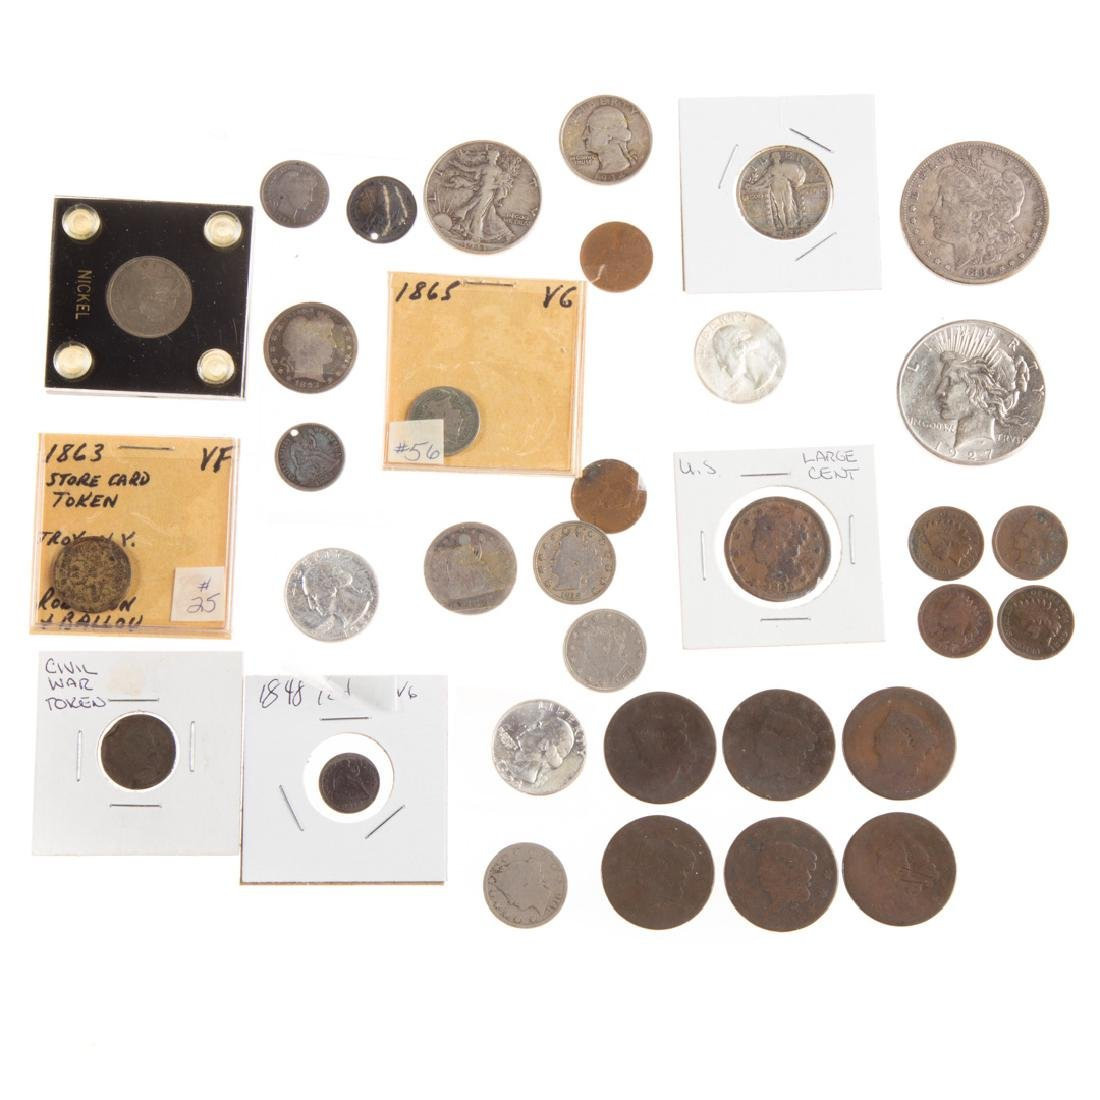 [US] Assortment of nice US type coins